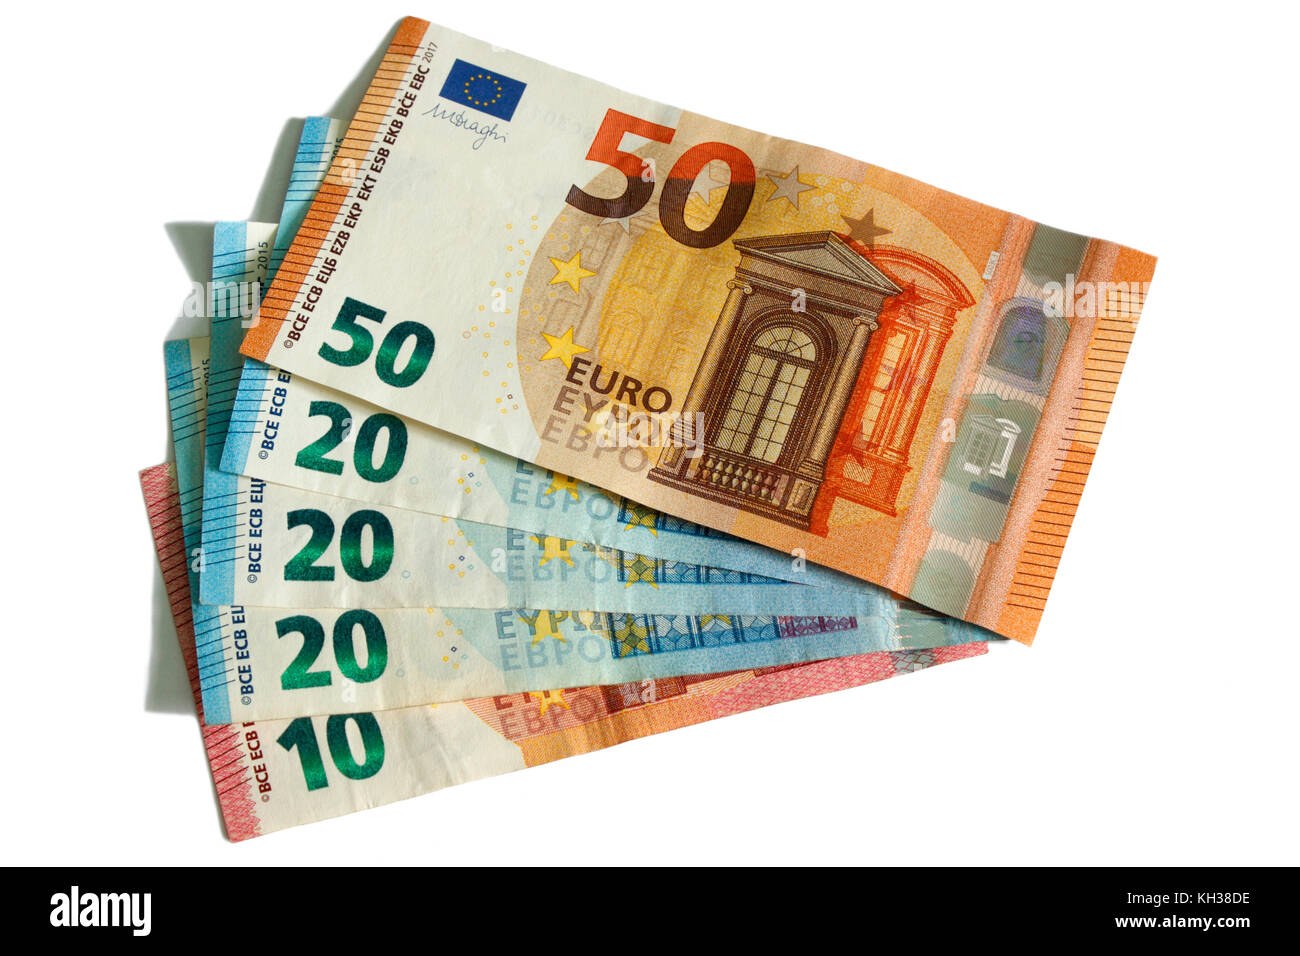 Euro currency notes in small denominations arranged in fan shape. Cutout on white background. Concept photo to illustrate - Stock Image